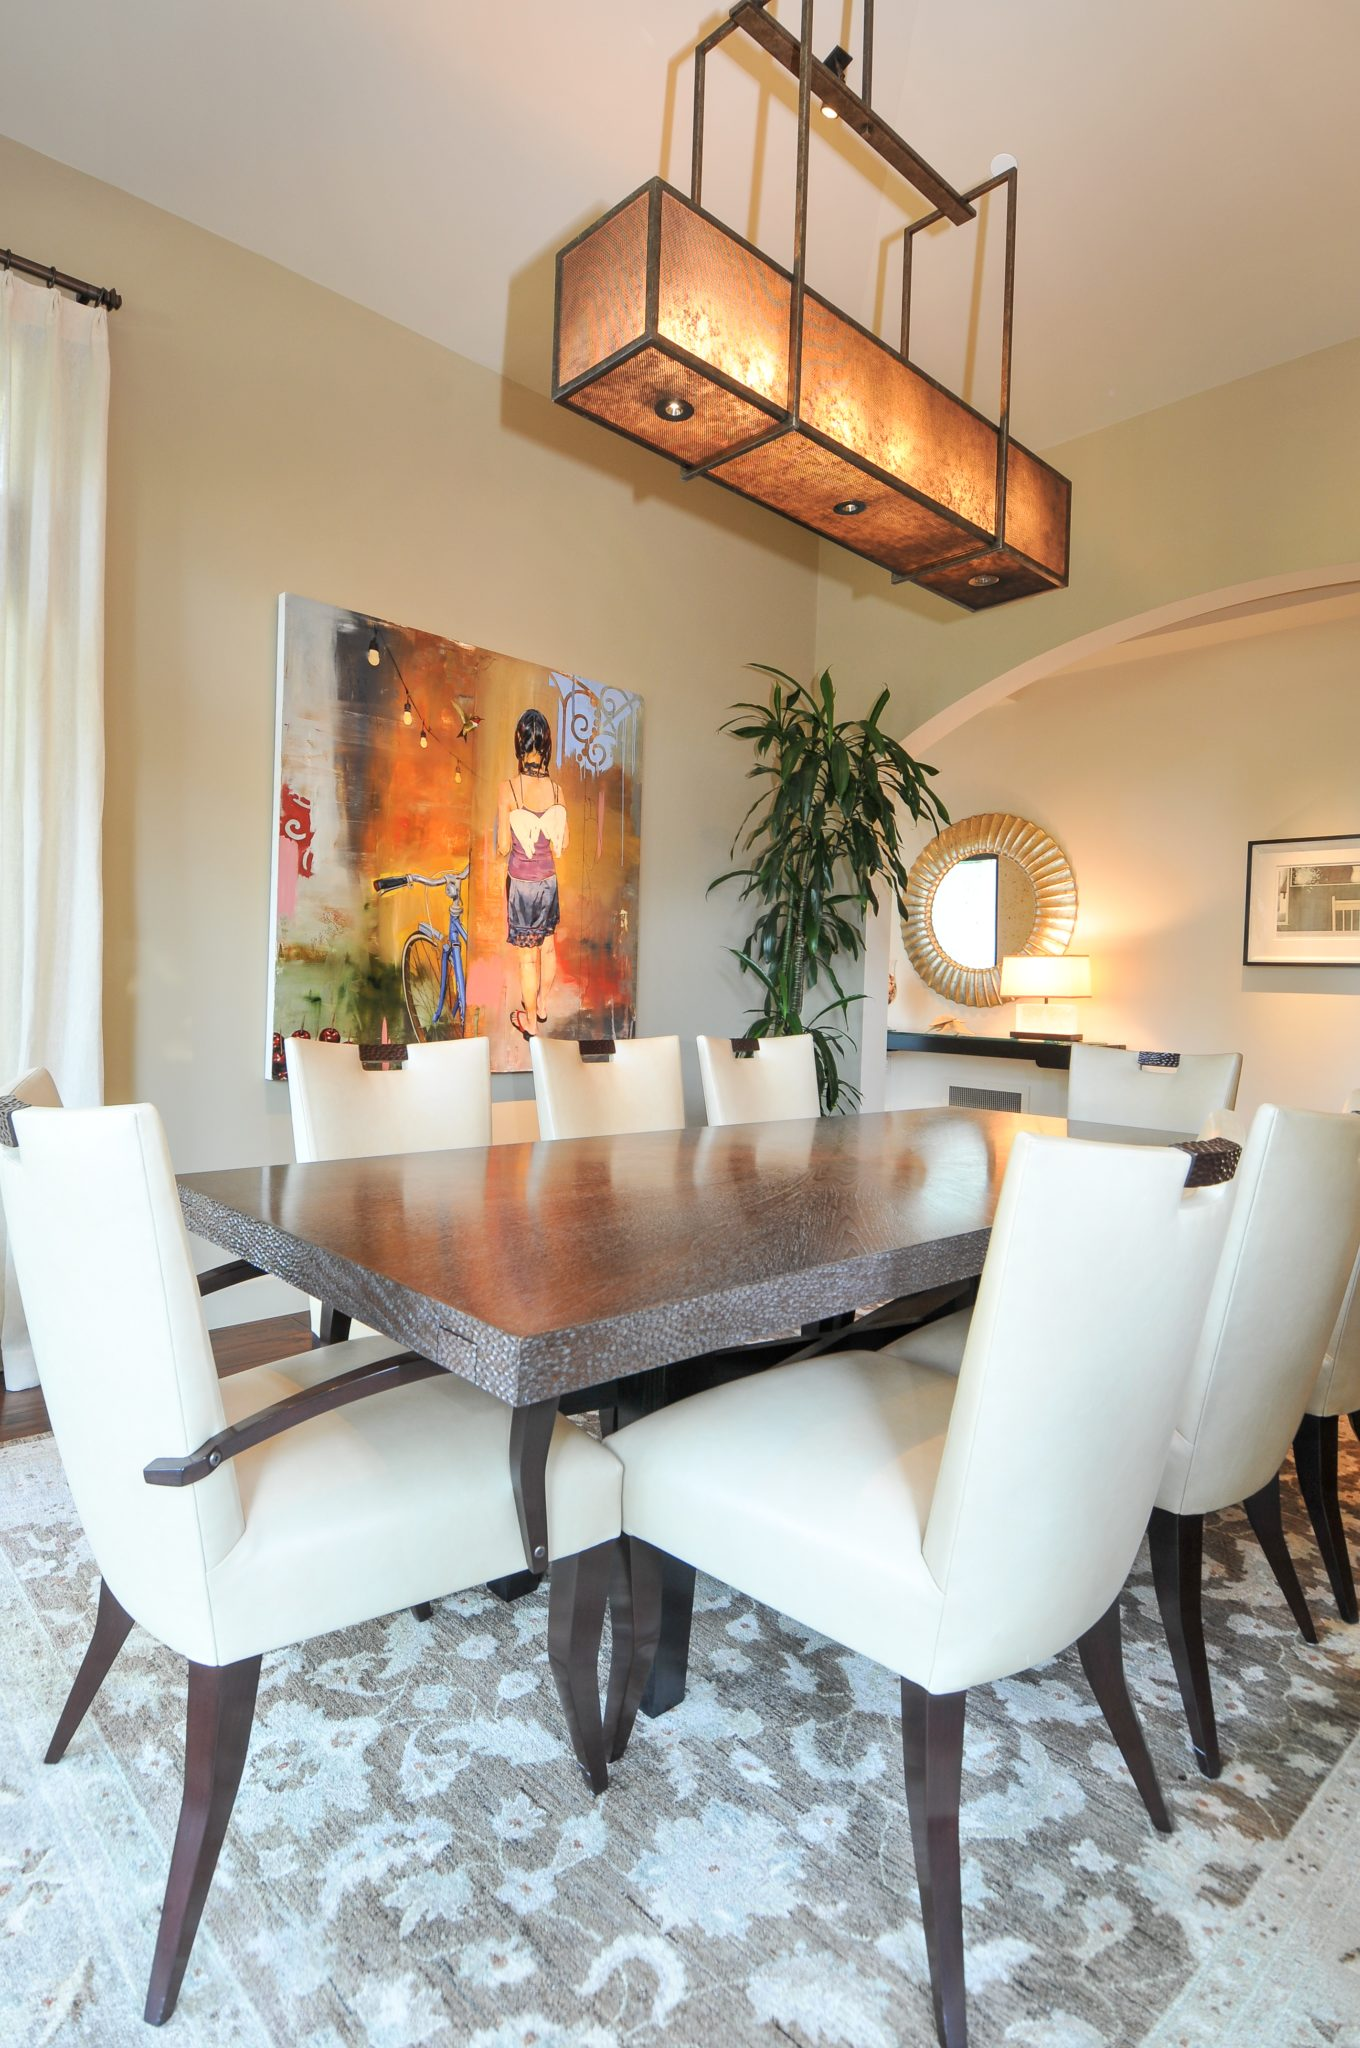 Dining room with Berman Rosetti chairs, Hammerton chandelier and original art by Alison Whittaker Design